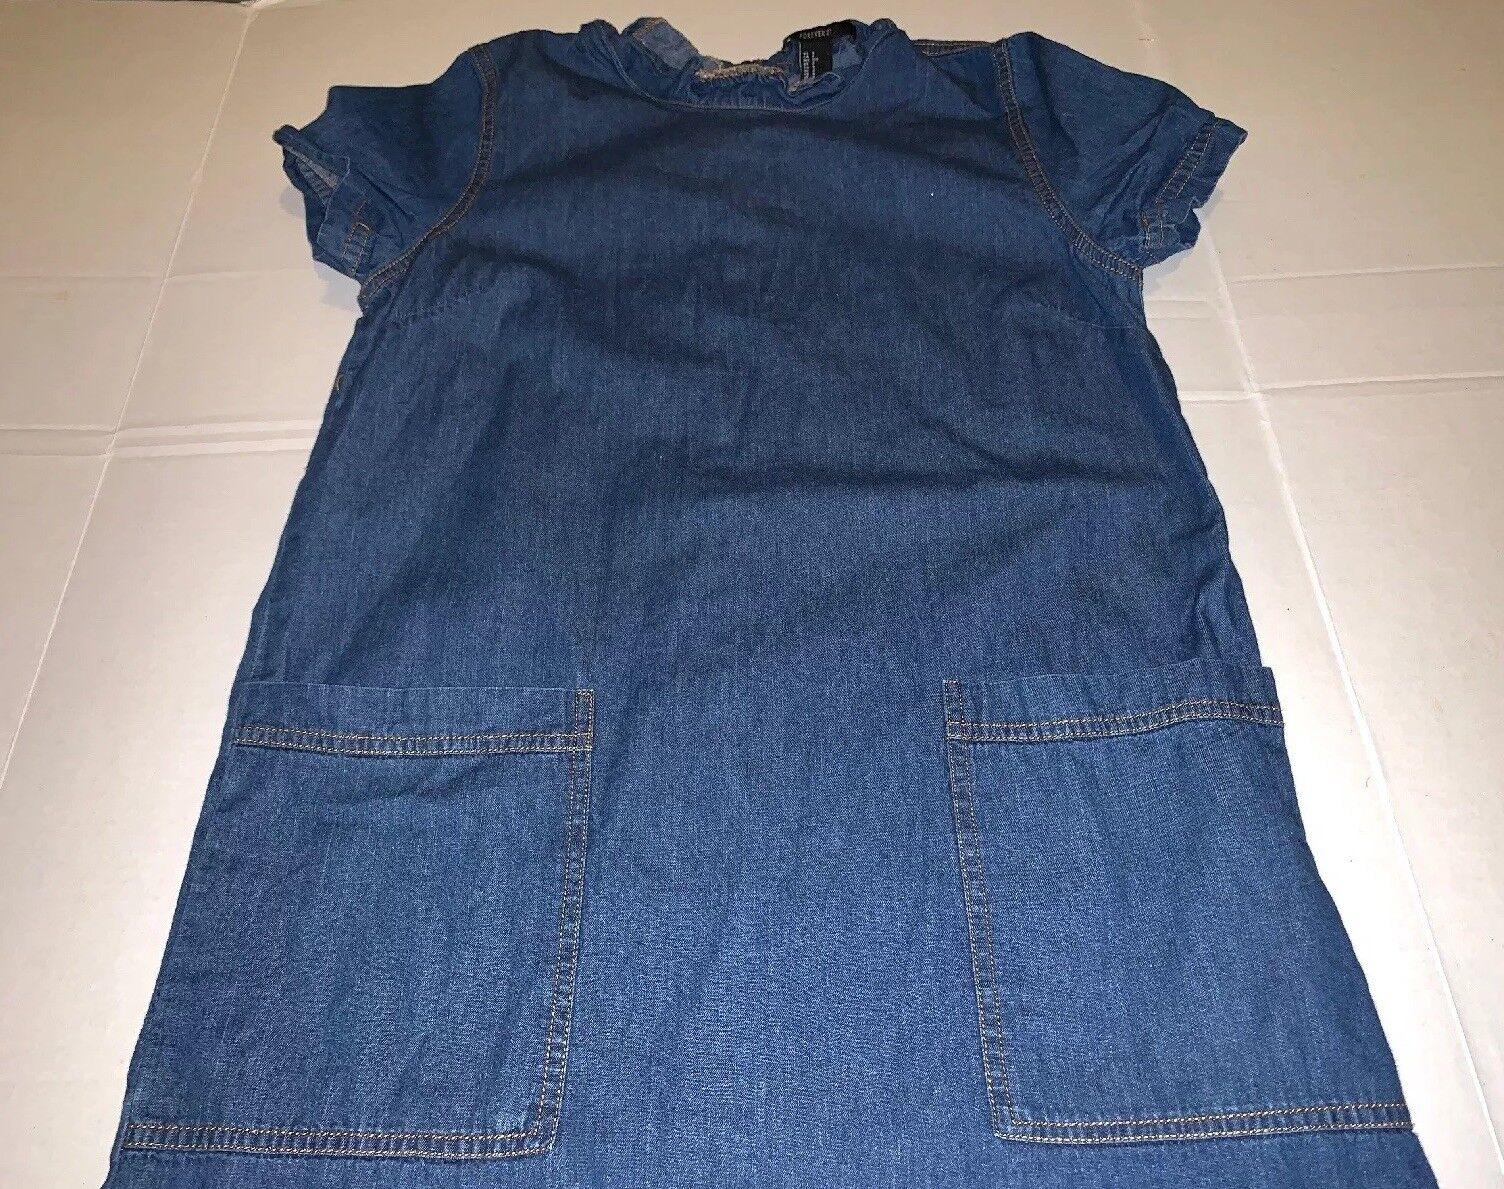 Preowned- Forever21 Dark Wash Chambray Denim Dres… - image 4